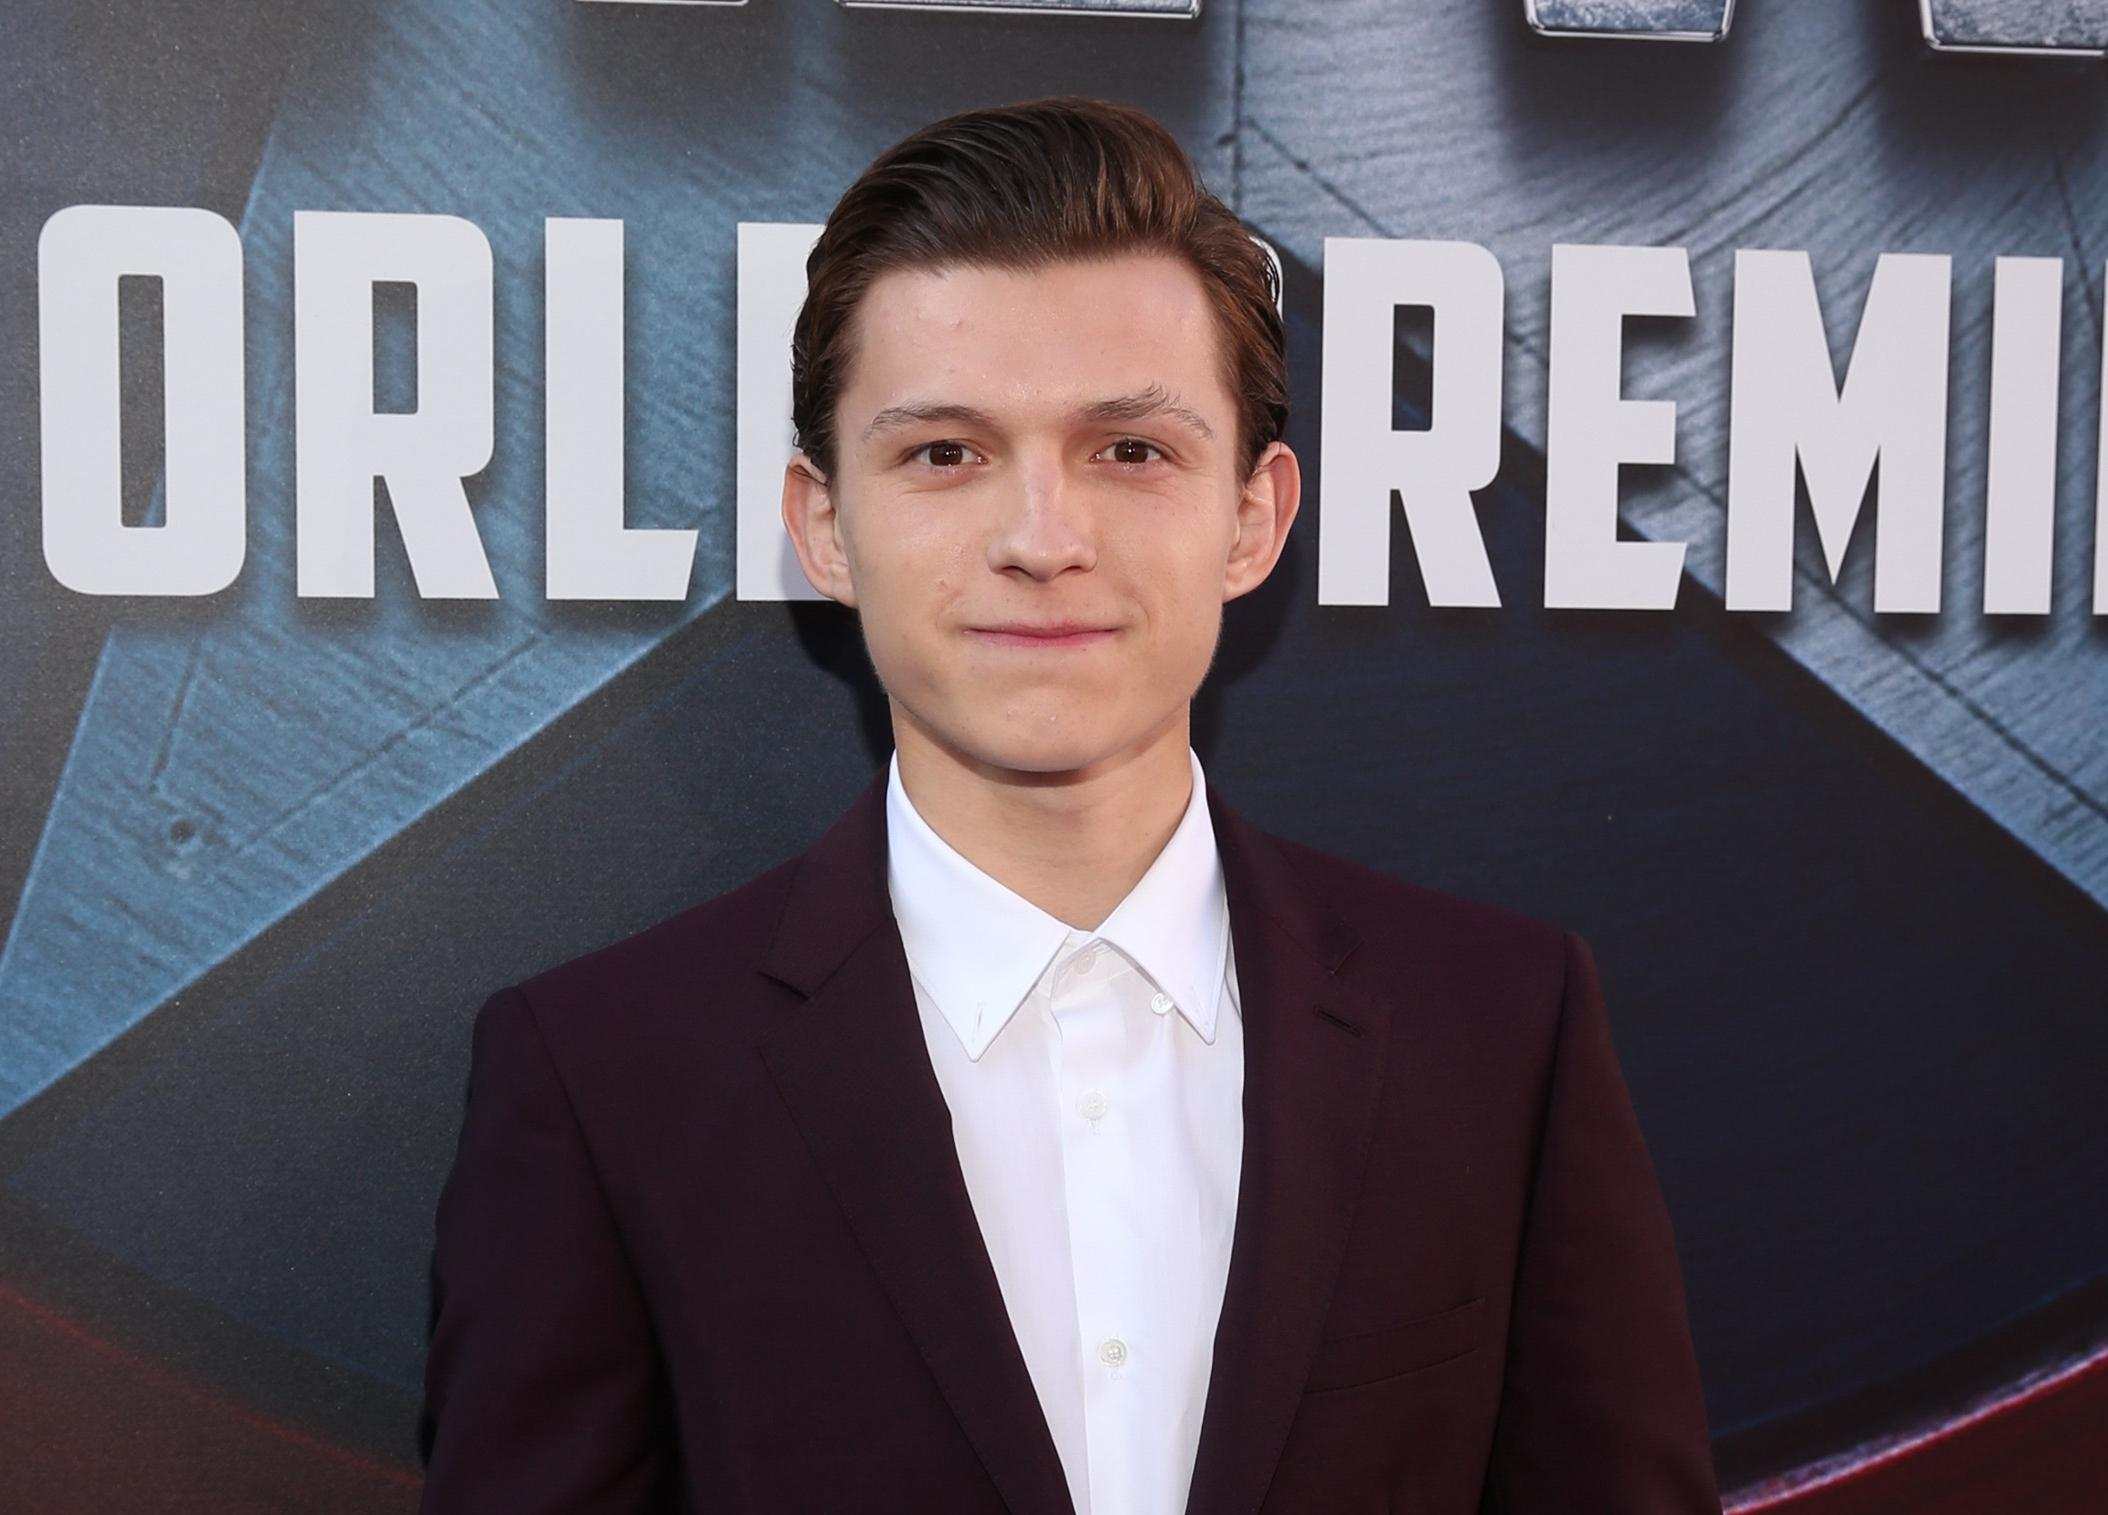 tom-holland-spider-man-latest-hollywood-hairstyles-2017-top-best-mens-guys